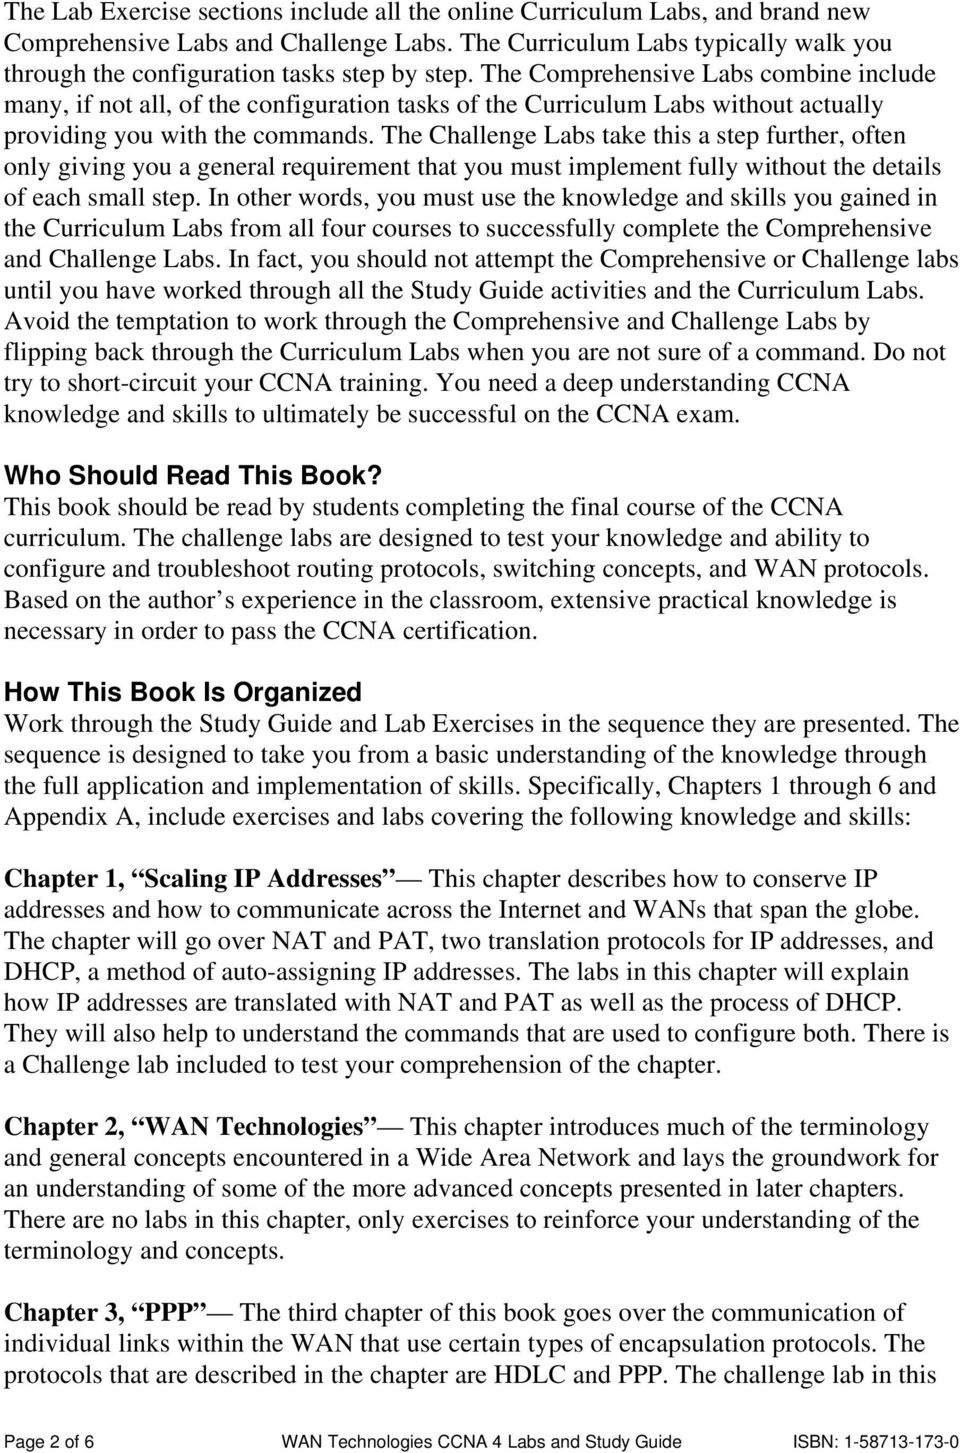 Ccna 3 chapter 1 study guide term paper sample 1406 words.